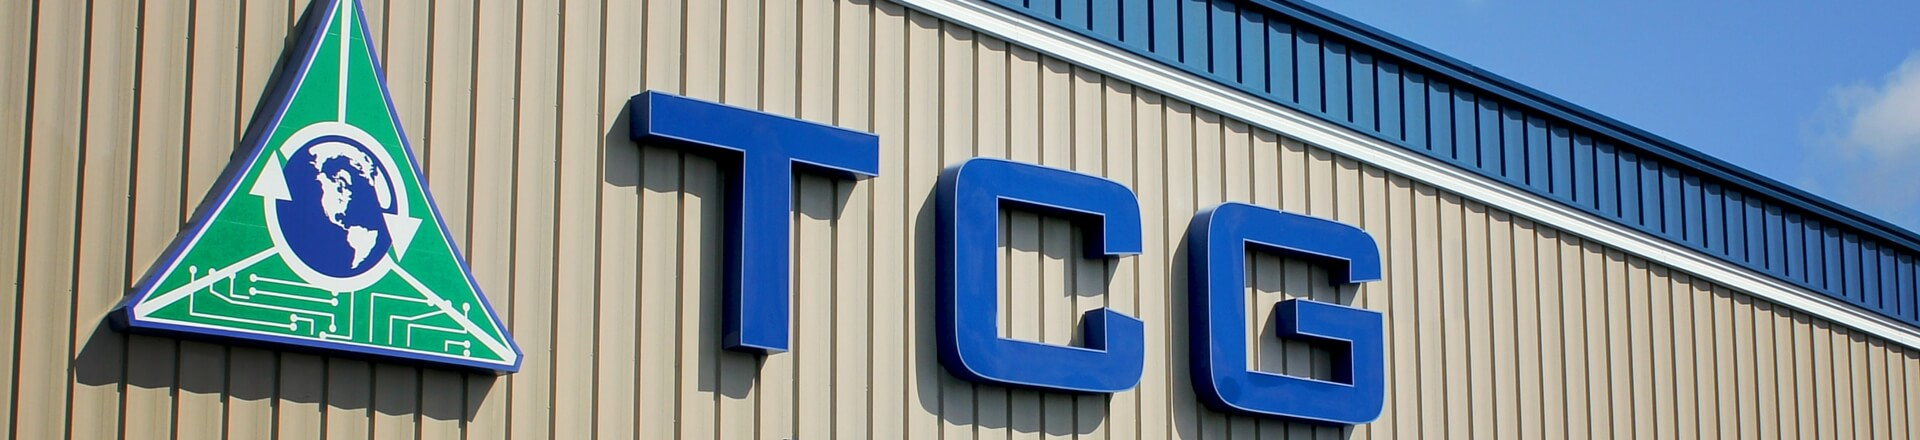 Main sign in front of TCG corporate